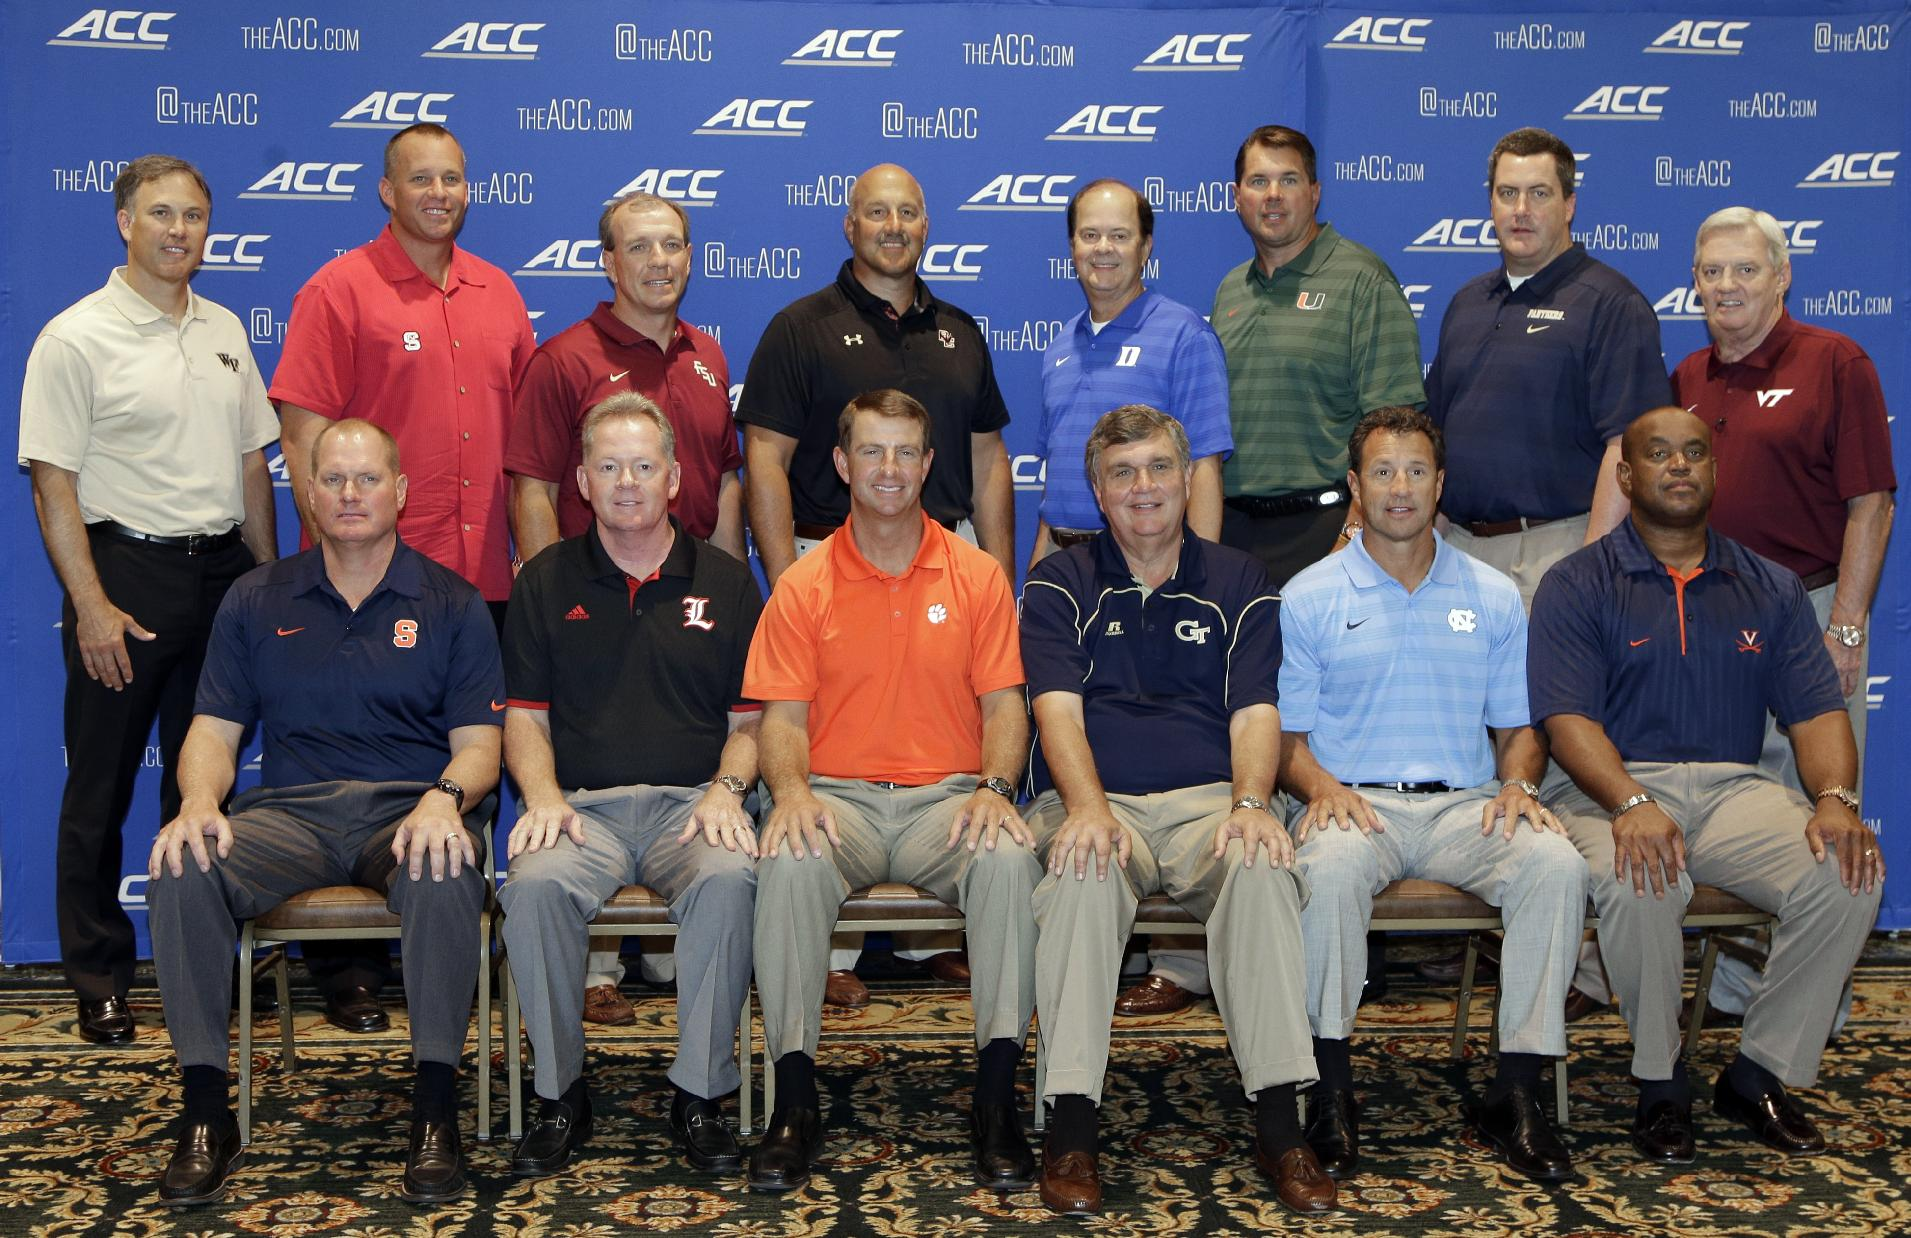 Atlantic Coast Conference football coaches pose for a group photo during the ACC Football kickoff in Greensboro, N.C., Monday, July 21, 2014. The coaches are, back row from left: Wake Forest's Dave Clawson, North Carolina State's Dave Doeren, Florida State's Jimbo Fisher, Boston College's Steve Addazio, Duke's David Cutcliffe, Miami's Al Golden, Pittsburgh's Paul Chryst, and Virginia Tech's Frank Beamer. Front row, from left are: Syracuse's Scott Shafer, Louisville's Bobby Petrino, Clemson's Dabo Swinney, Georgia Tech's Paul Johnson, North Carolina's Larry Fedora, and Virginia's Mike London